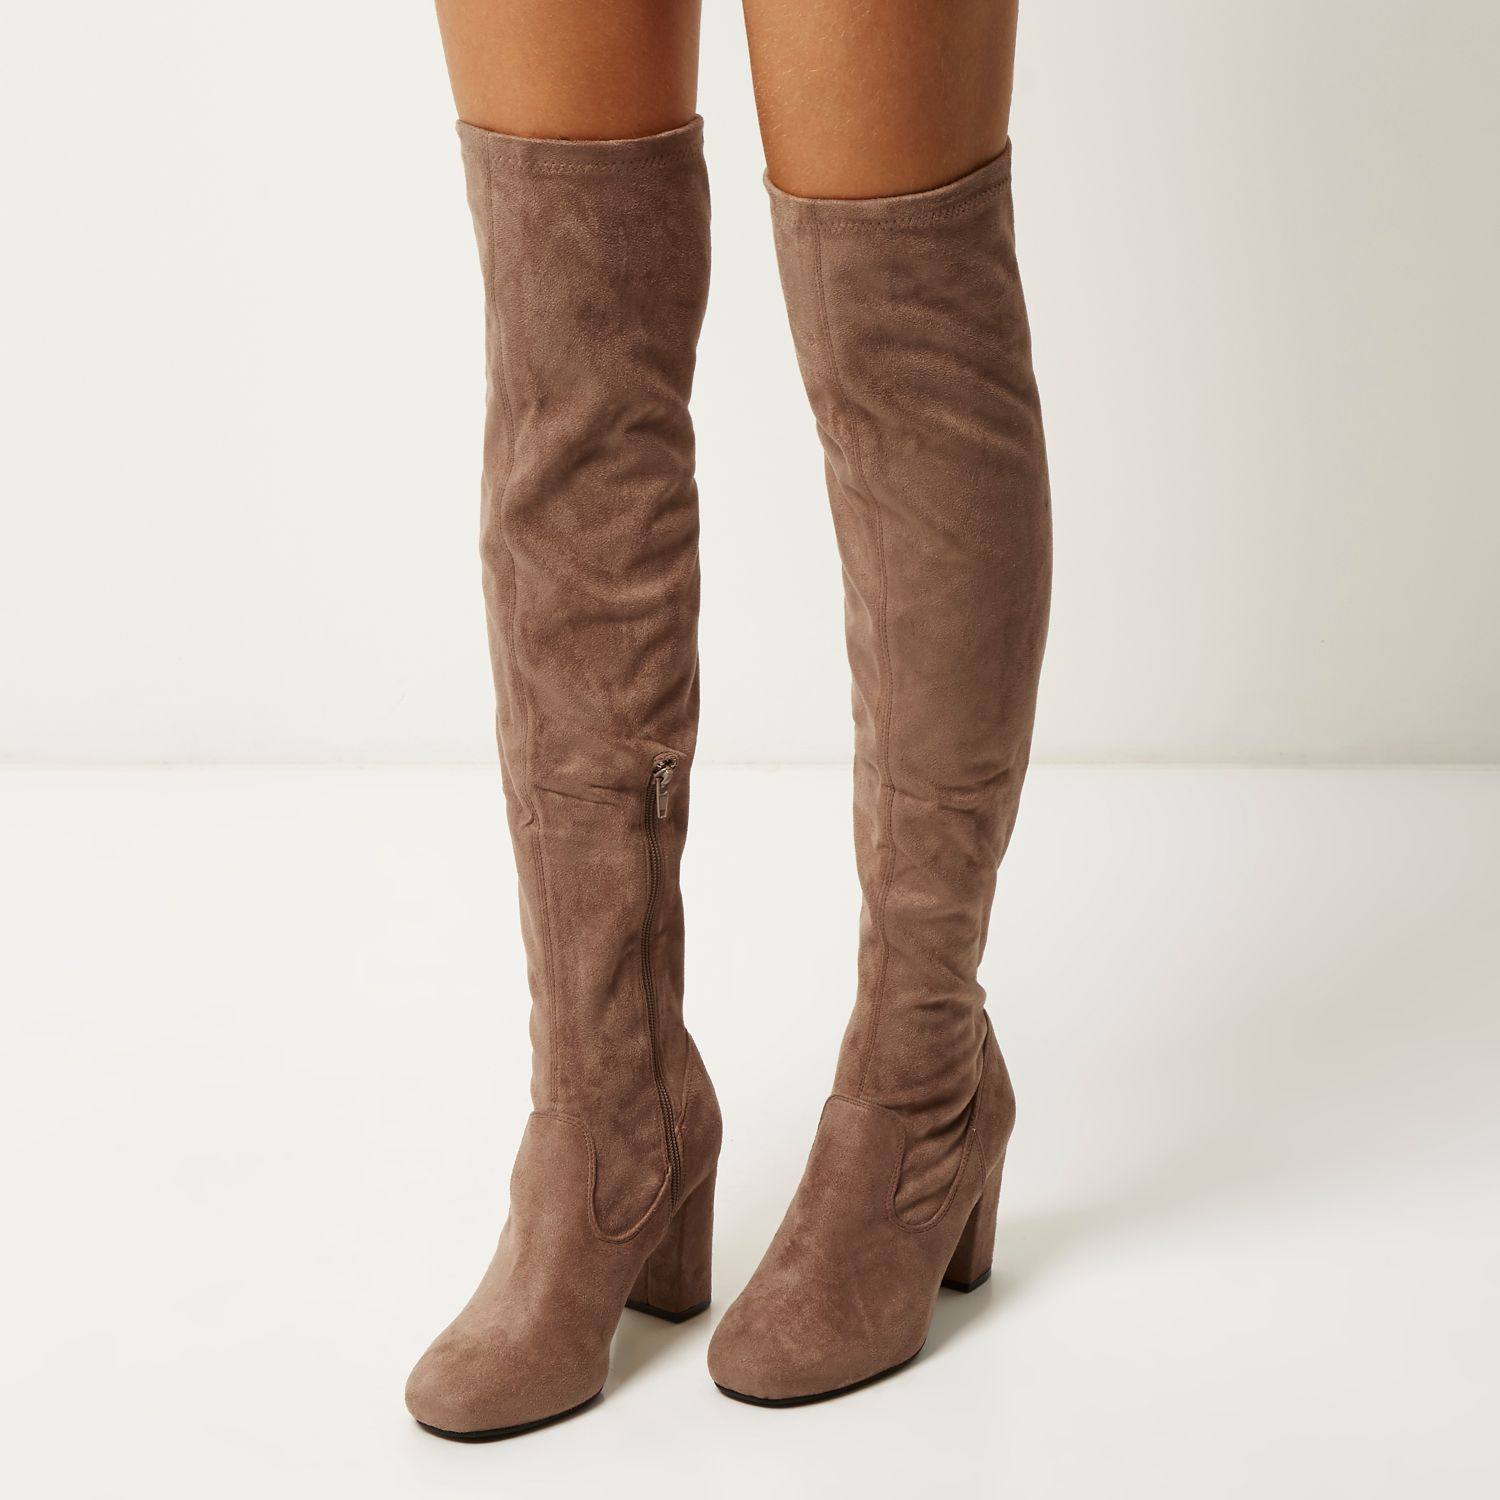 7522feb1e56 River Island Tan Faux Suede Over The Knee Heeled Boots in Gray - Lyst